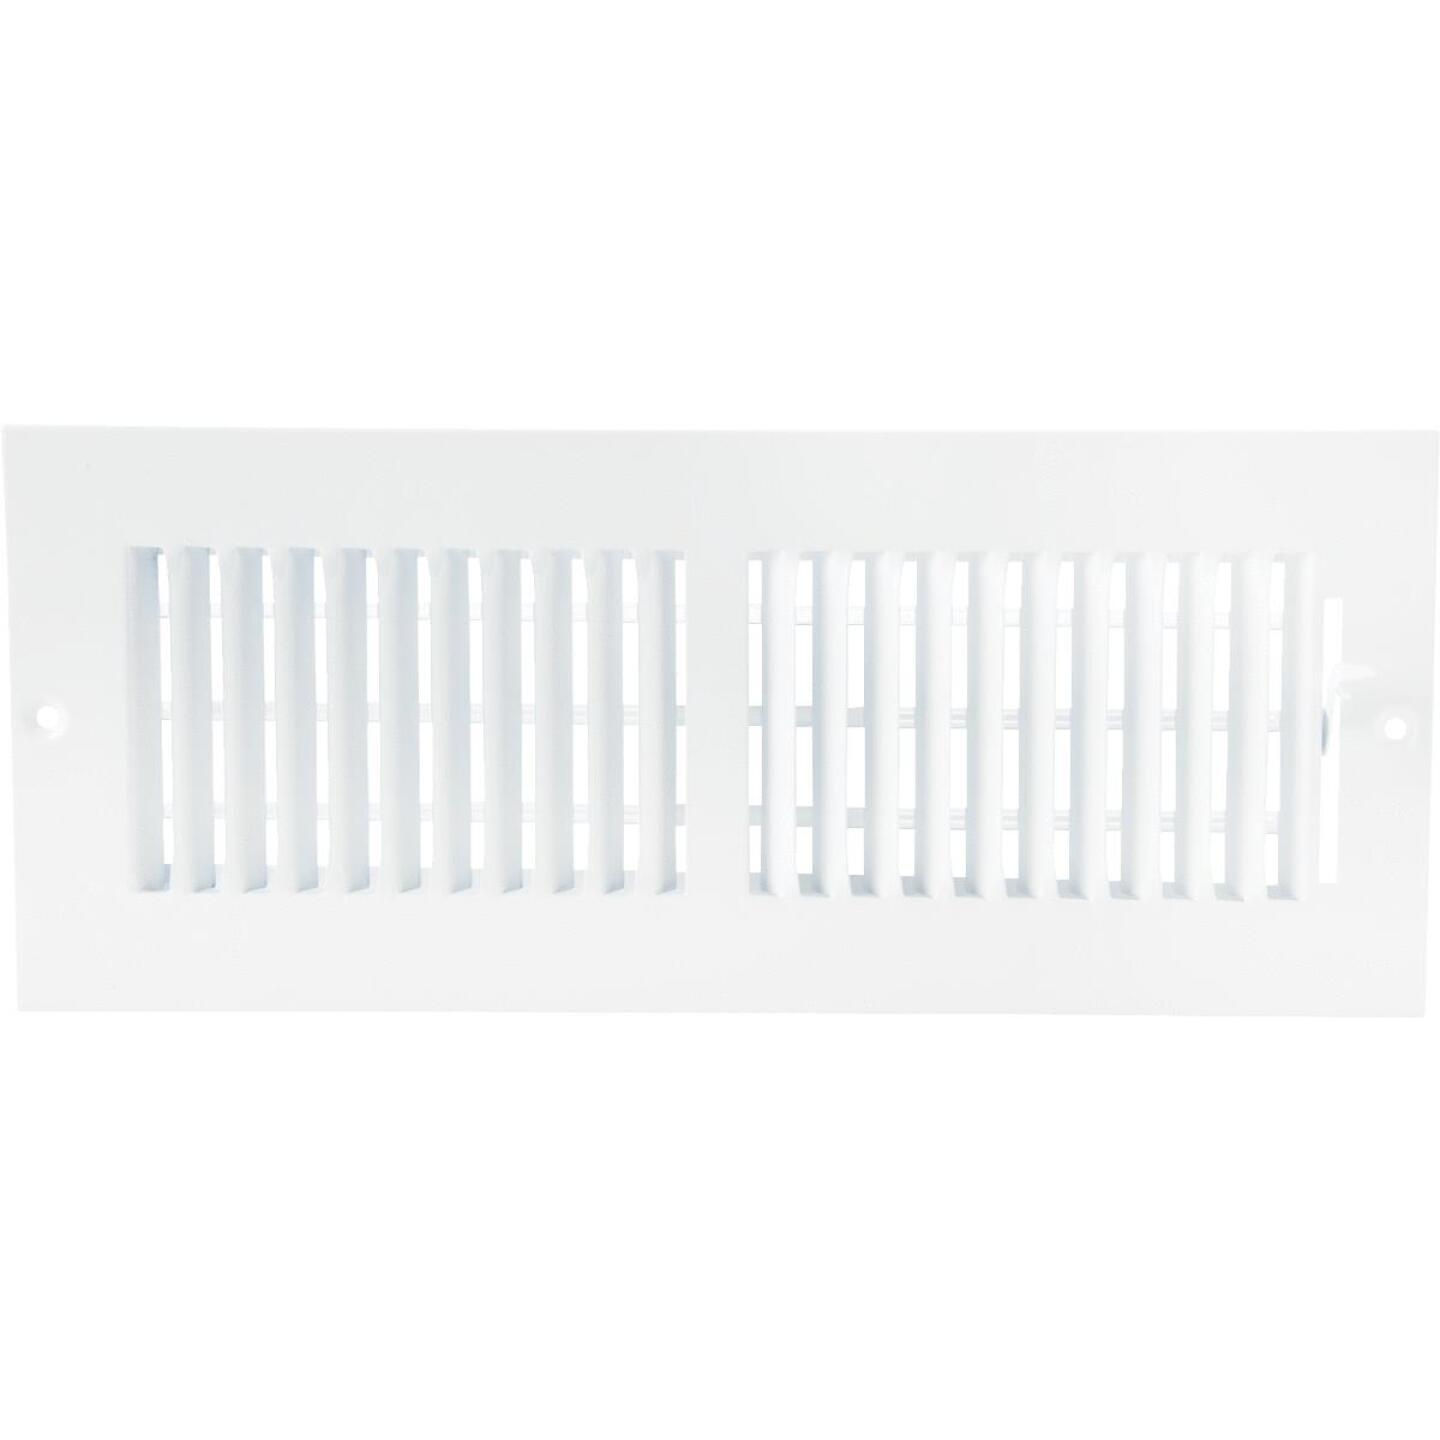 Home Impressions White Steel 5.75 In. Wall Register Image 2